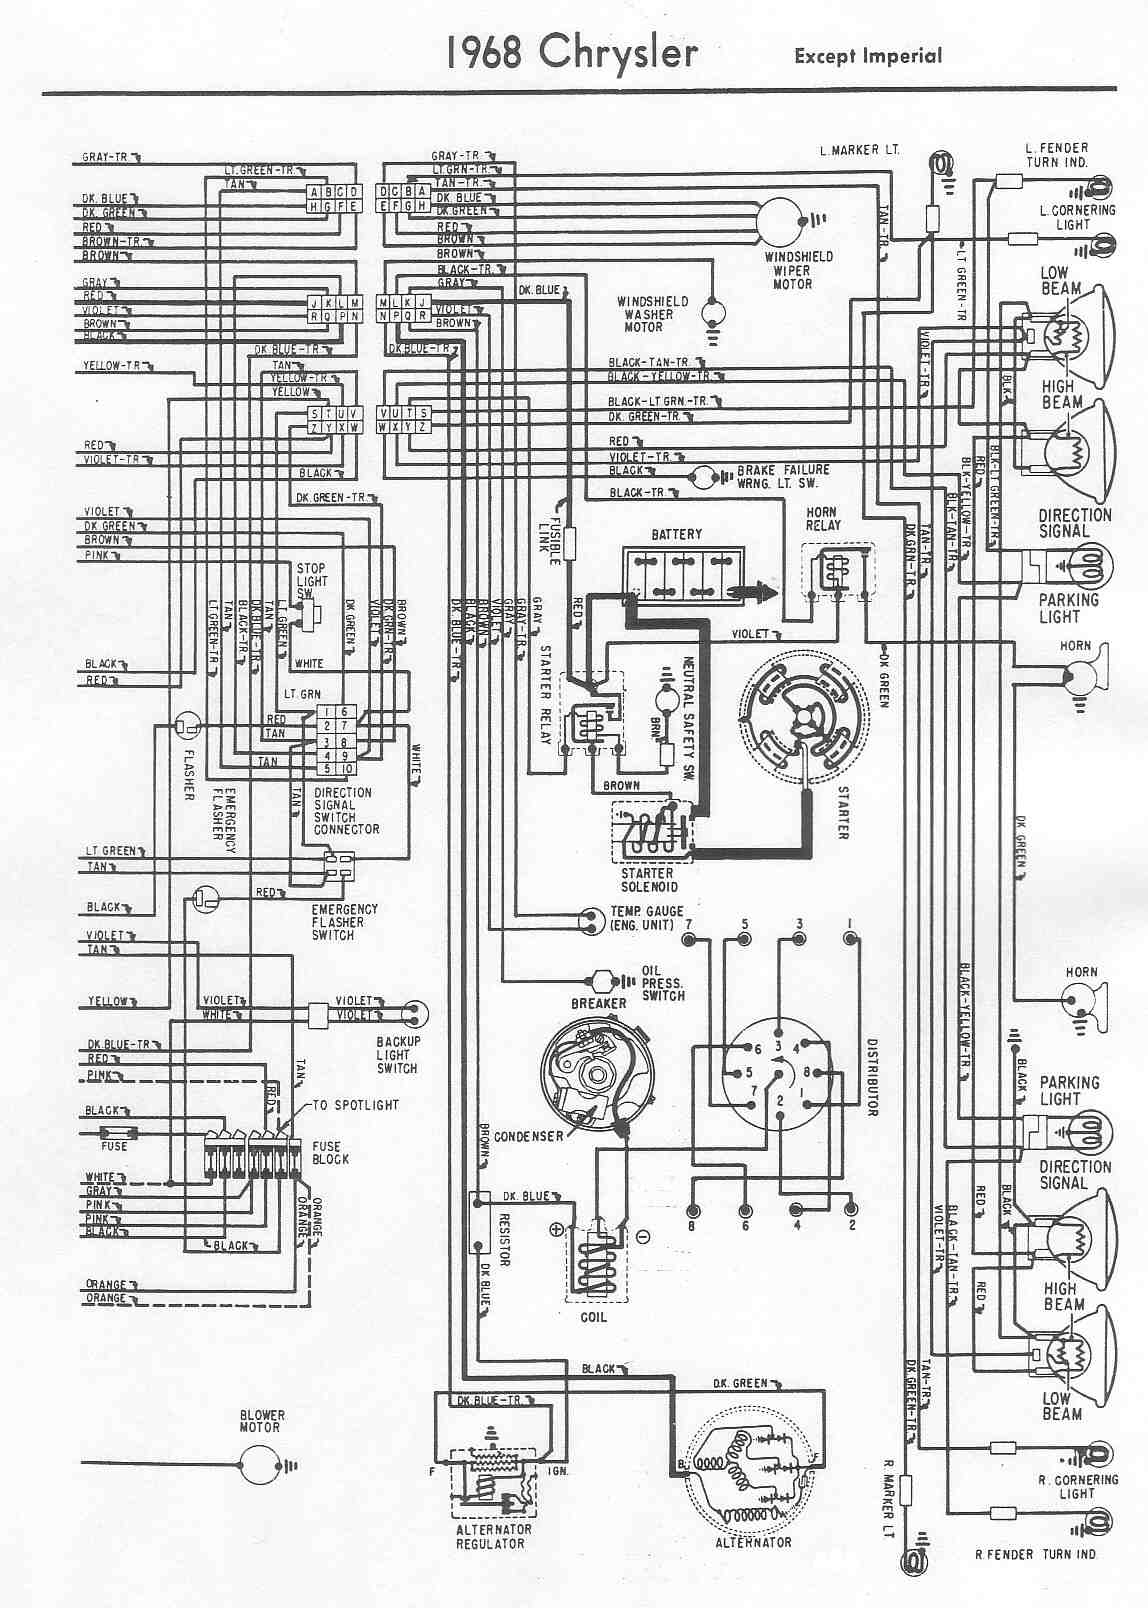 02 chrysler 300 wiring diagram sunroof chrysler - car manuals, wiring diagrams pdf & fault codes 1968 chrysler 300 wiring diagram #7